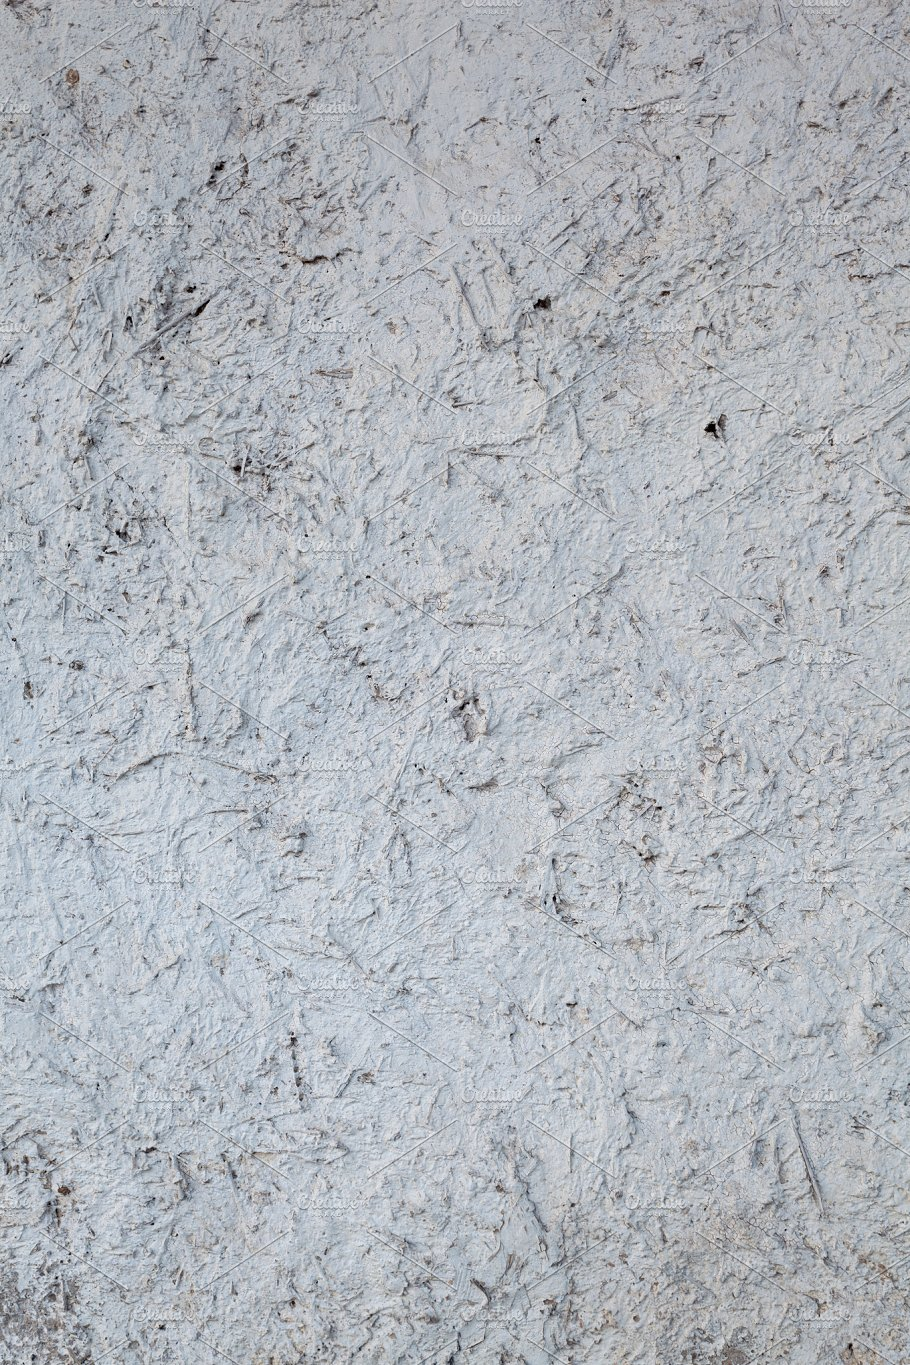 clay walls summary Clay wall photo of old clay wall background horizontal texture weathered surface with cracked straw clay background clay walls book summary previous.